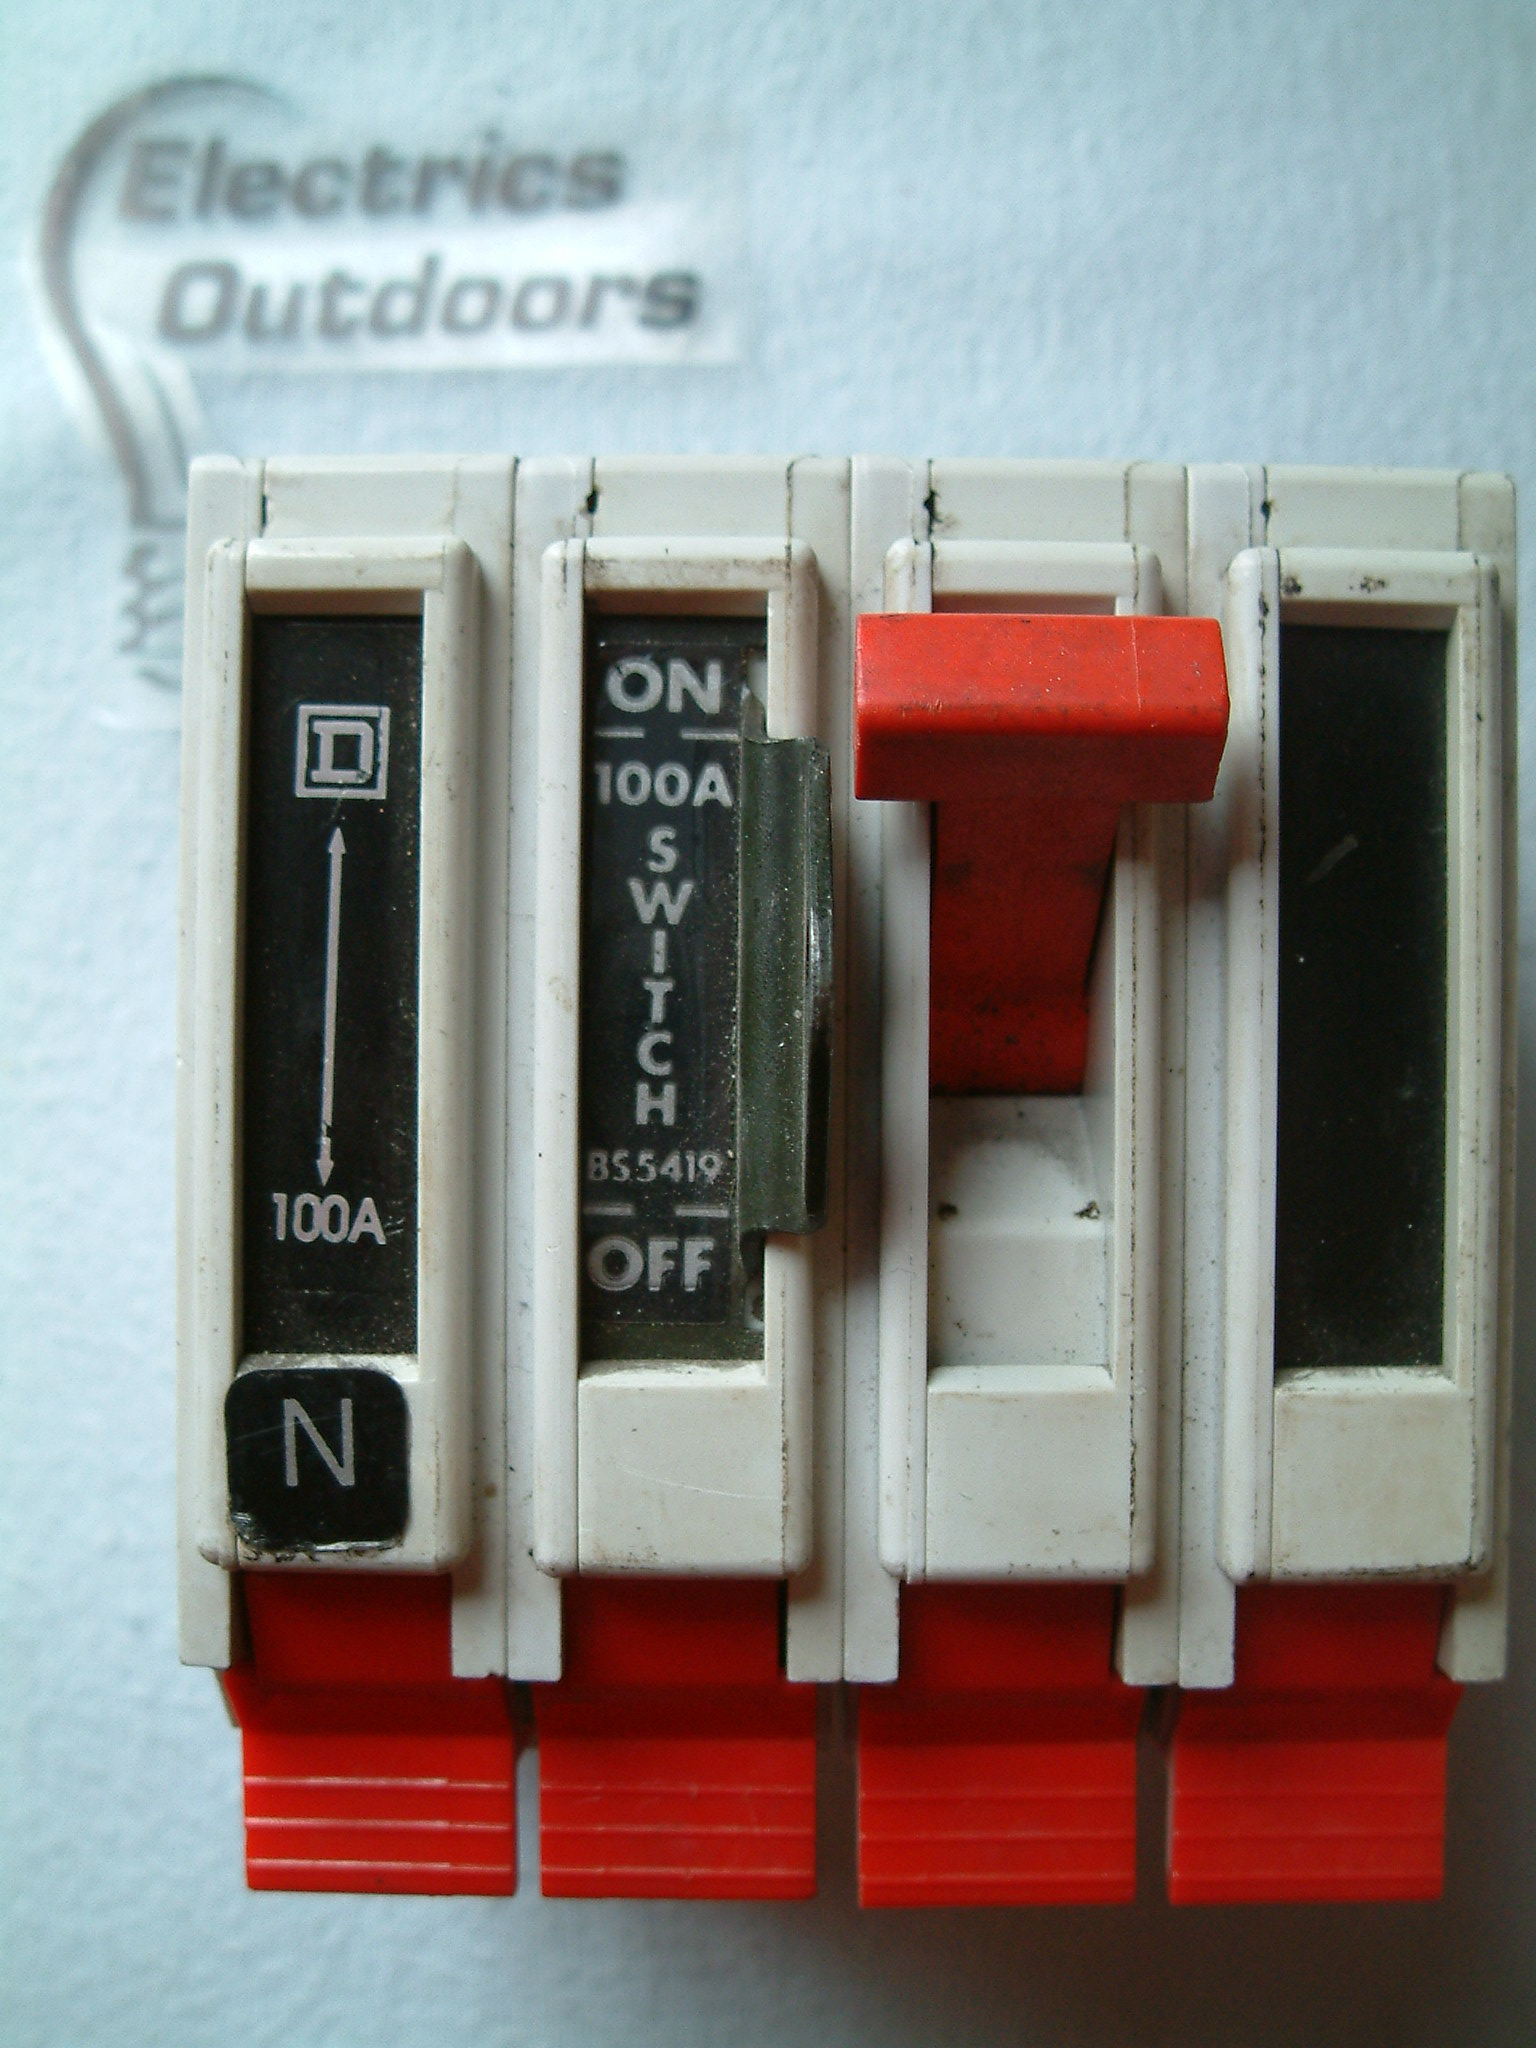 SQUARE D 100 AMP MAIN SWITCH DISCONNECTOR FOUR POLE QO4100MN BS 5419